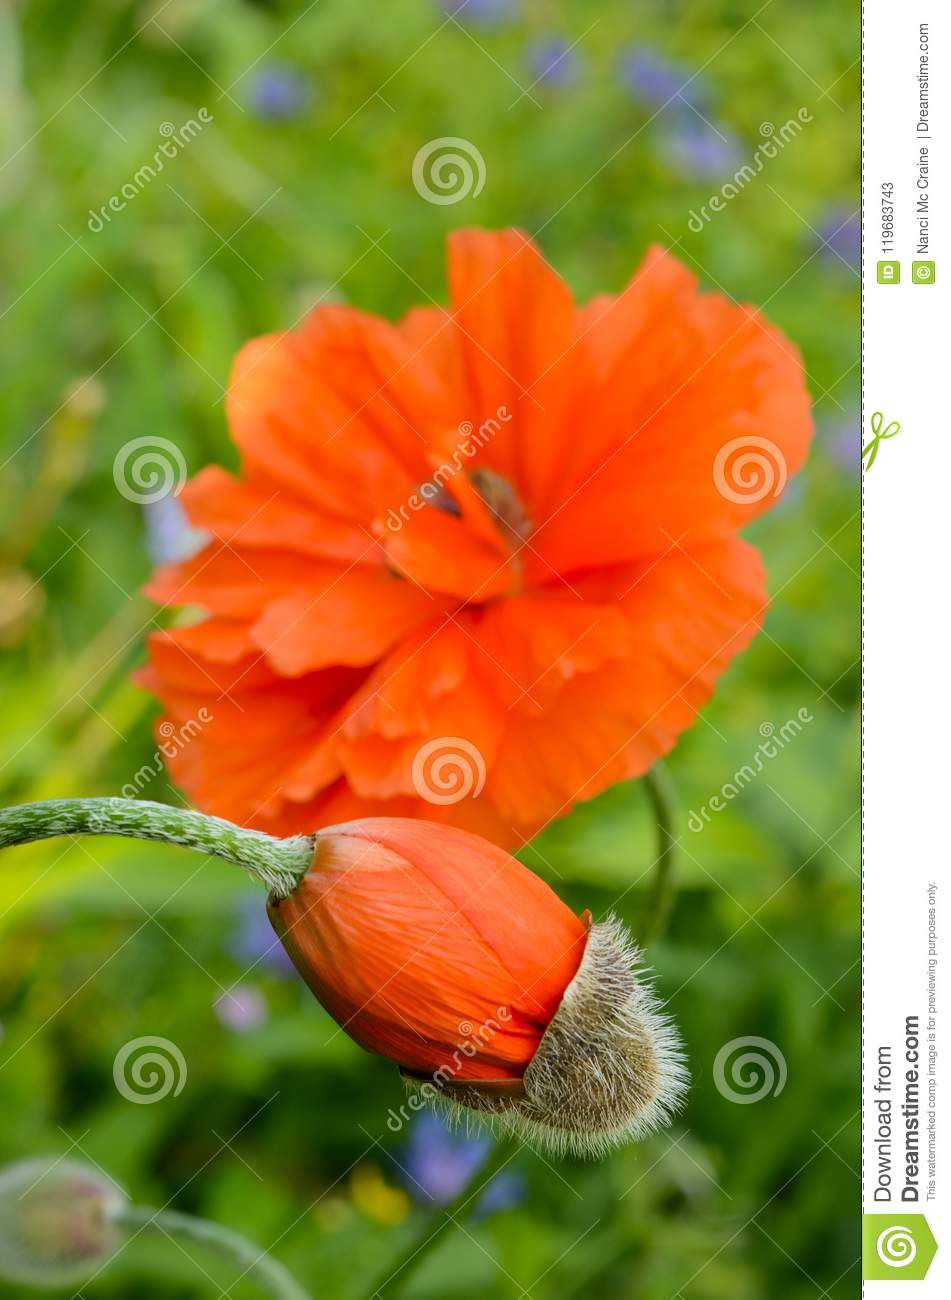 Orange Poppy Flowers From Beginning To Full Bloom Stock Image